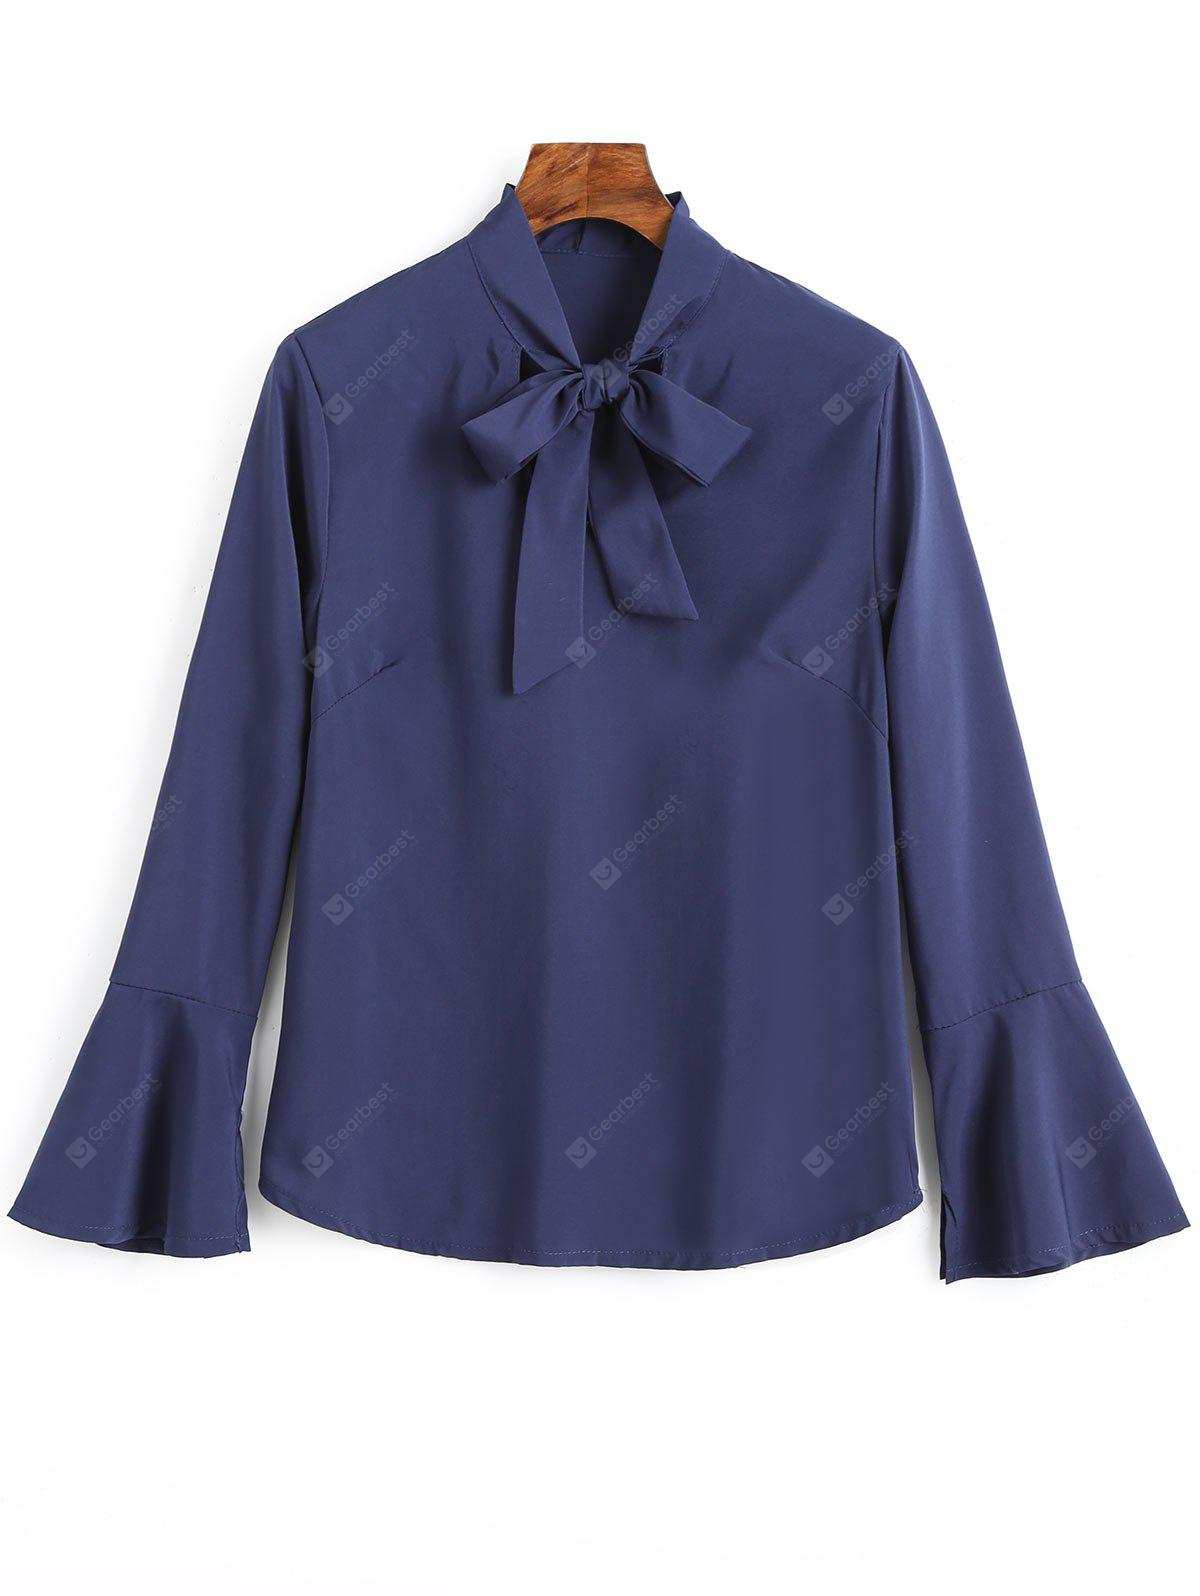 CERULEAN S Slit Bell Sleeve Bow Tie Blouse